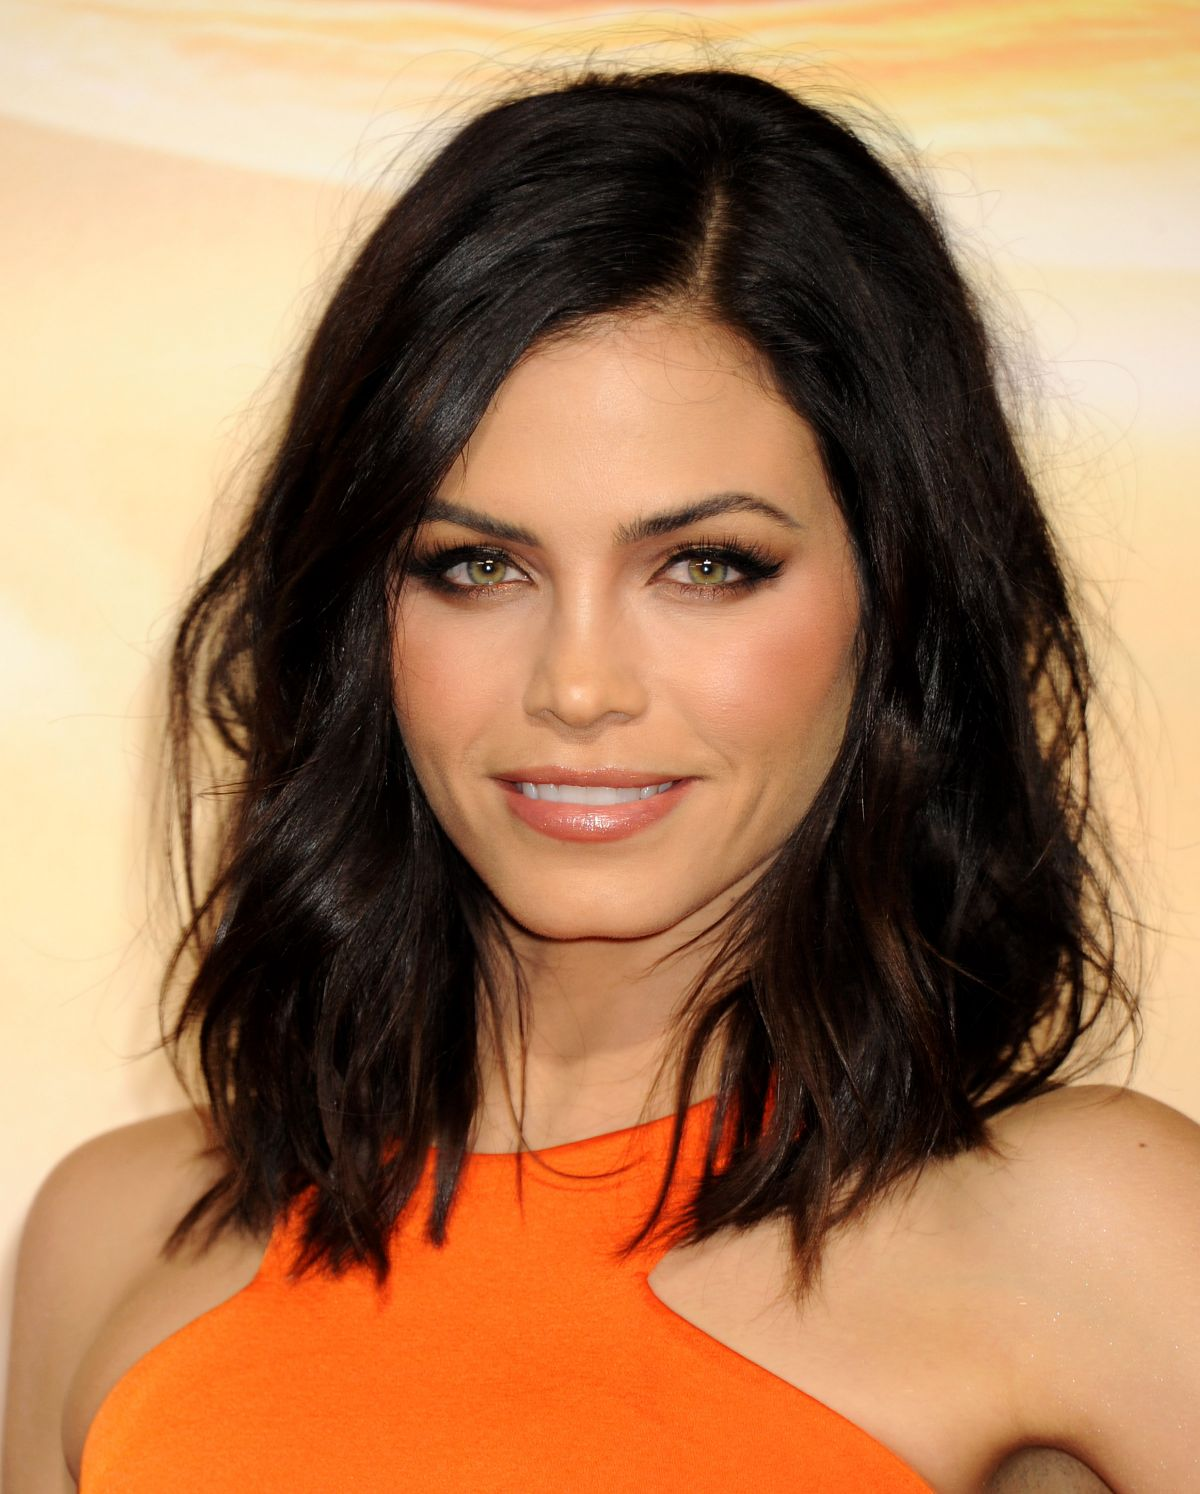 jenna-dewan-tatum-attend-the-jupiter-ascending-premiere-in-hollywood_1